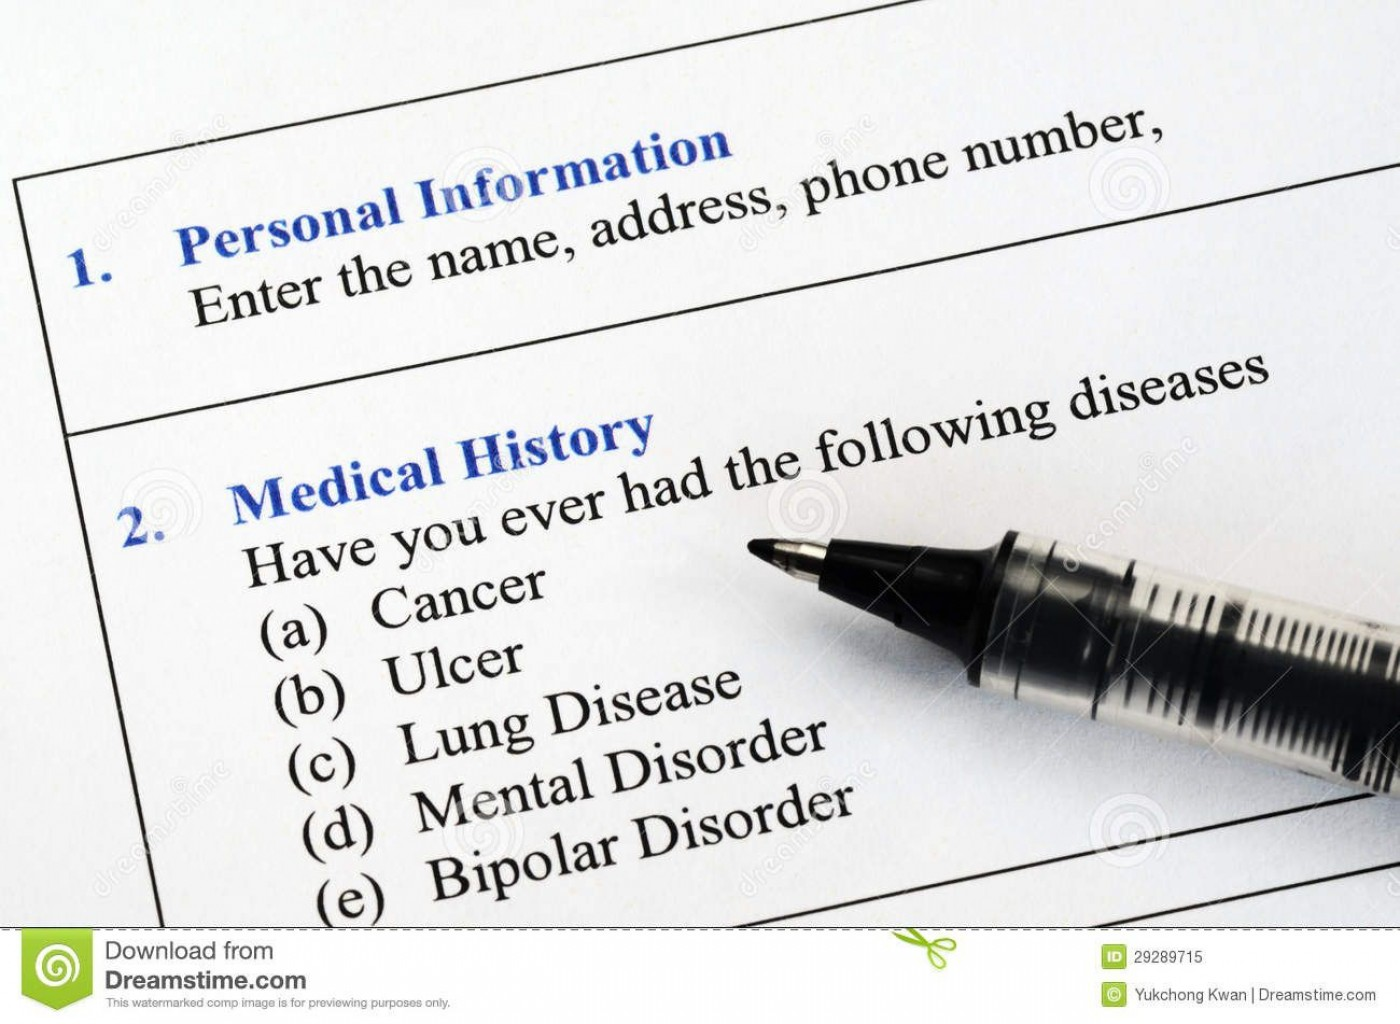 005 Unique Personal Medical History Template Download High Definition 1400